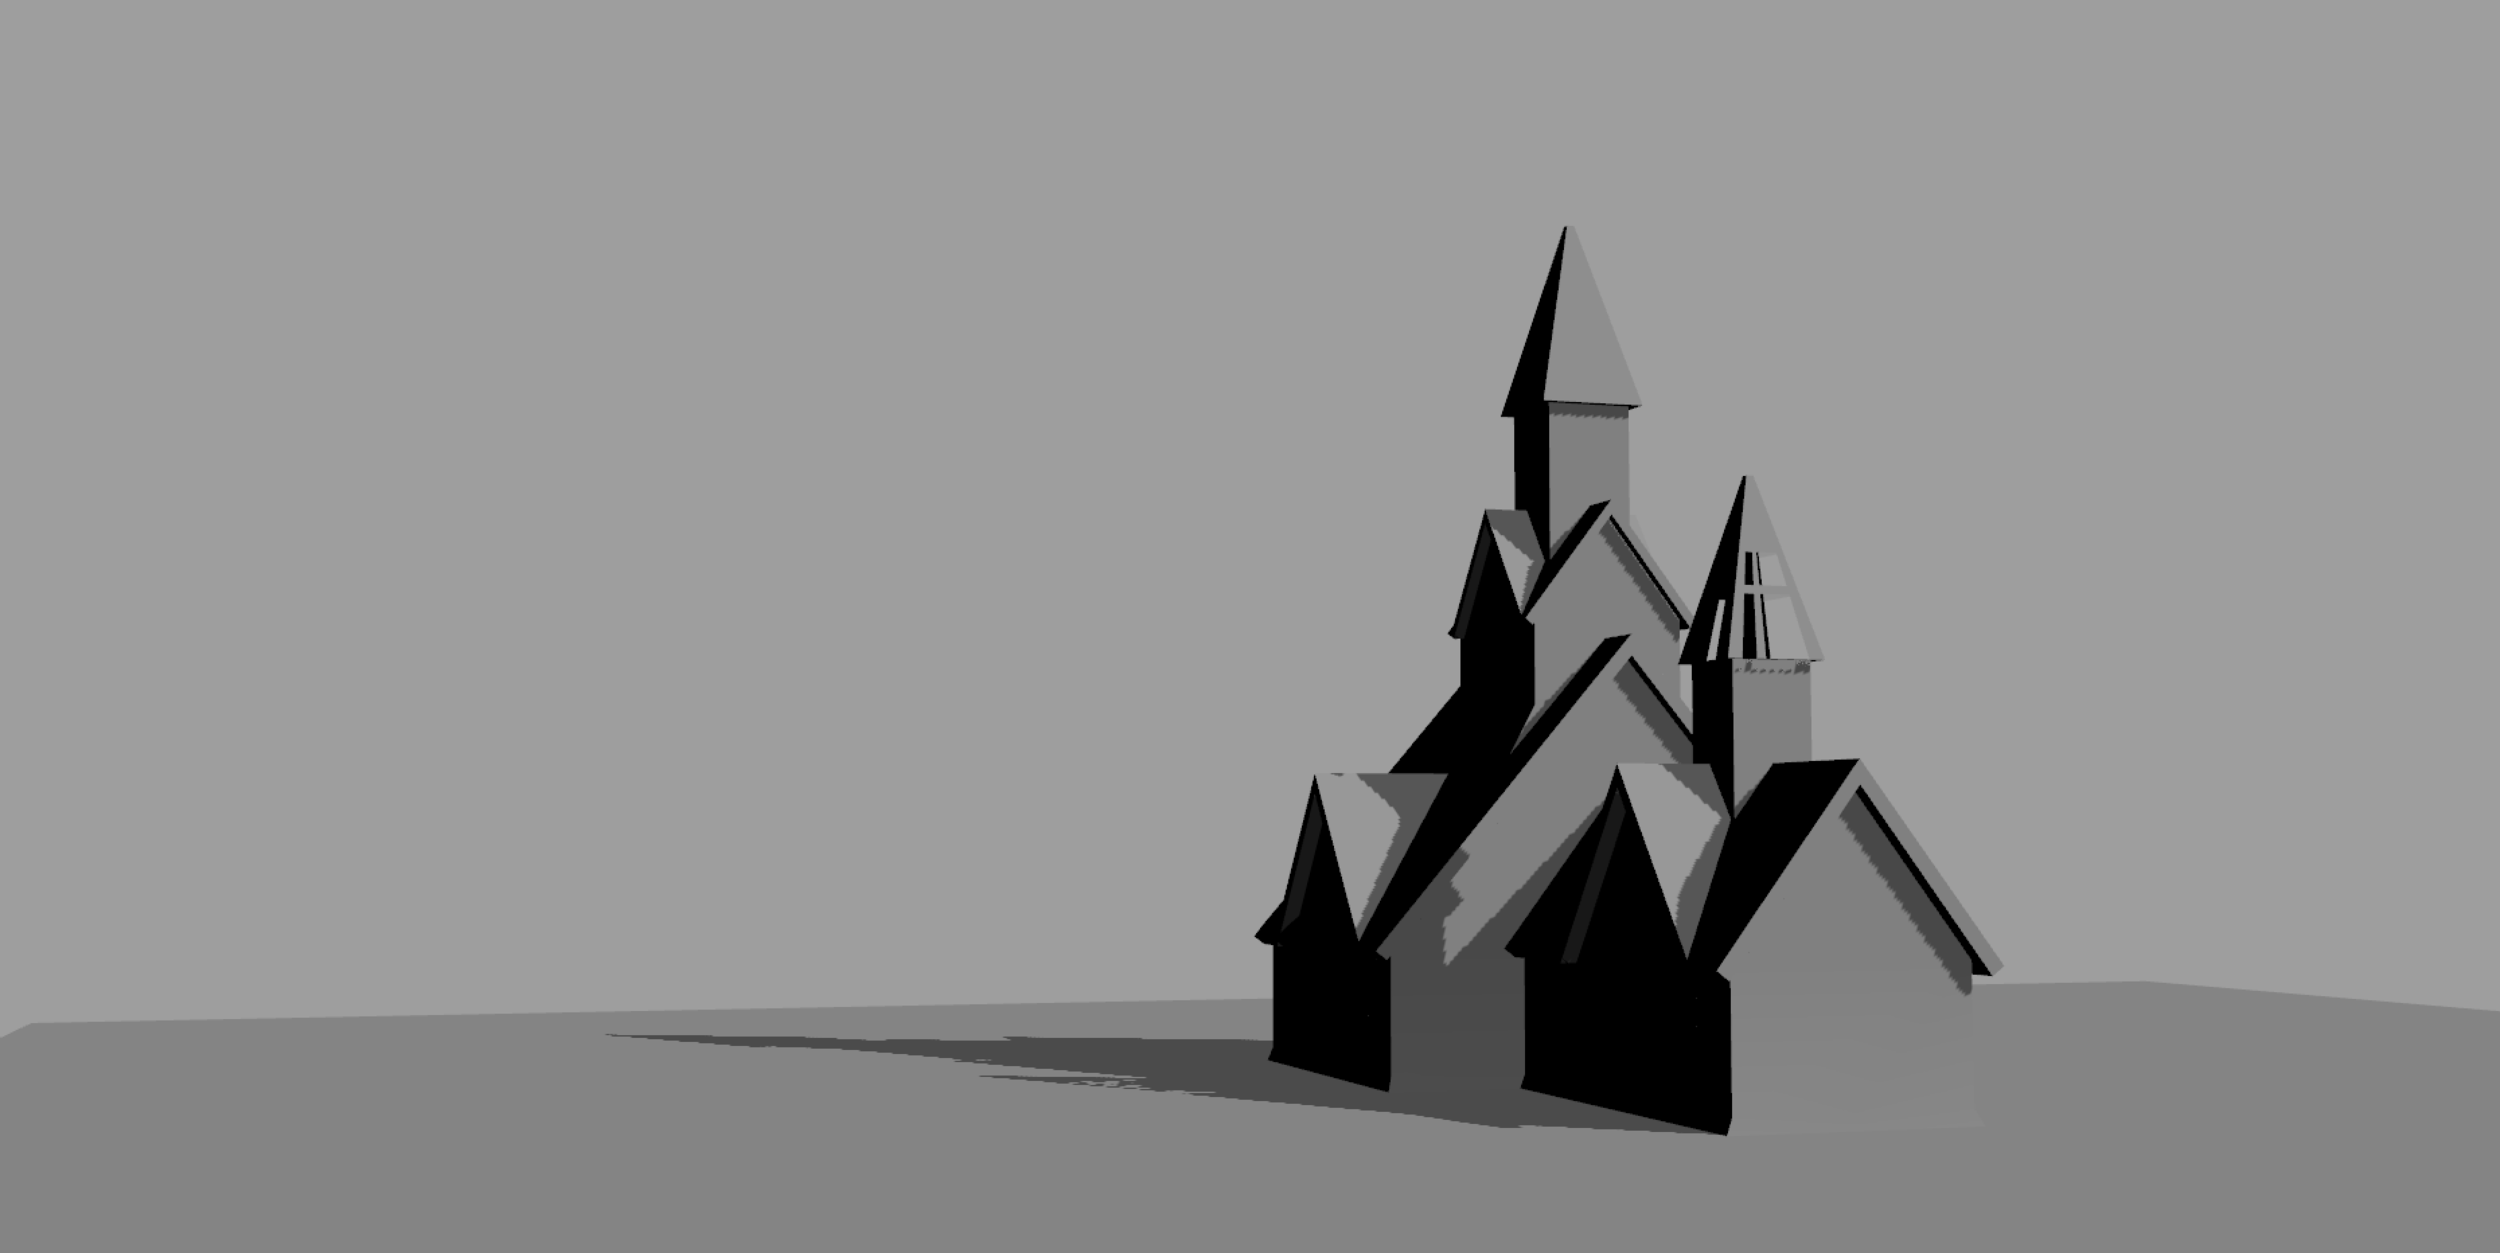 Quick 3d mockup of the church for perspective and lighting